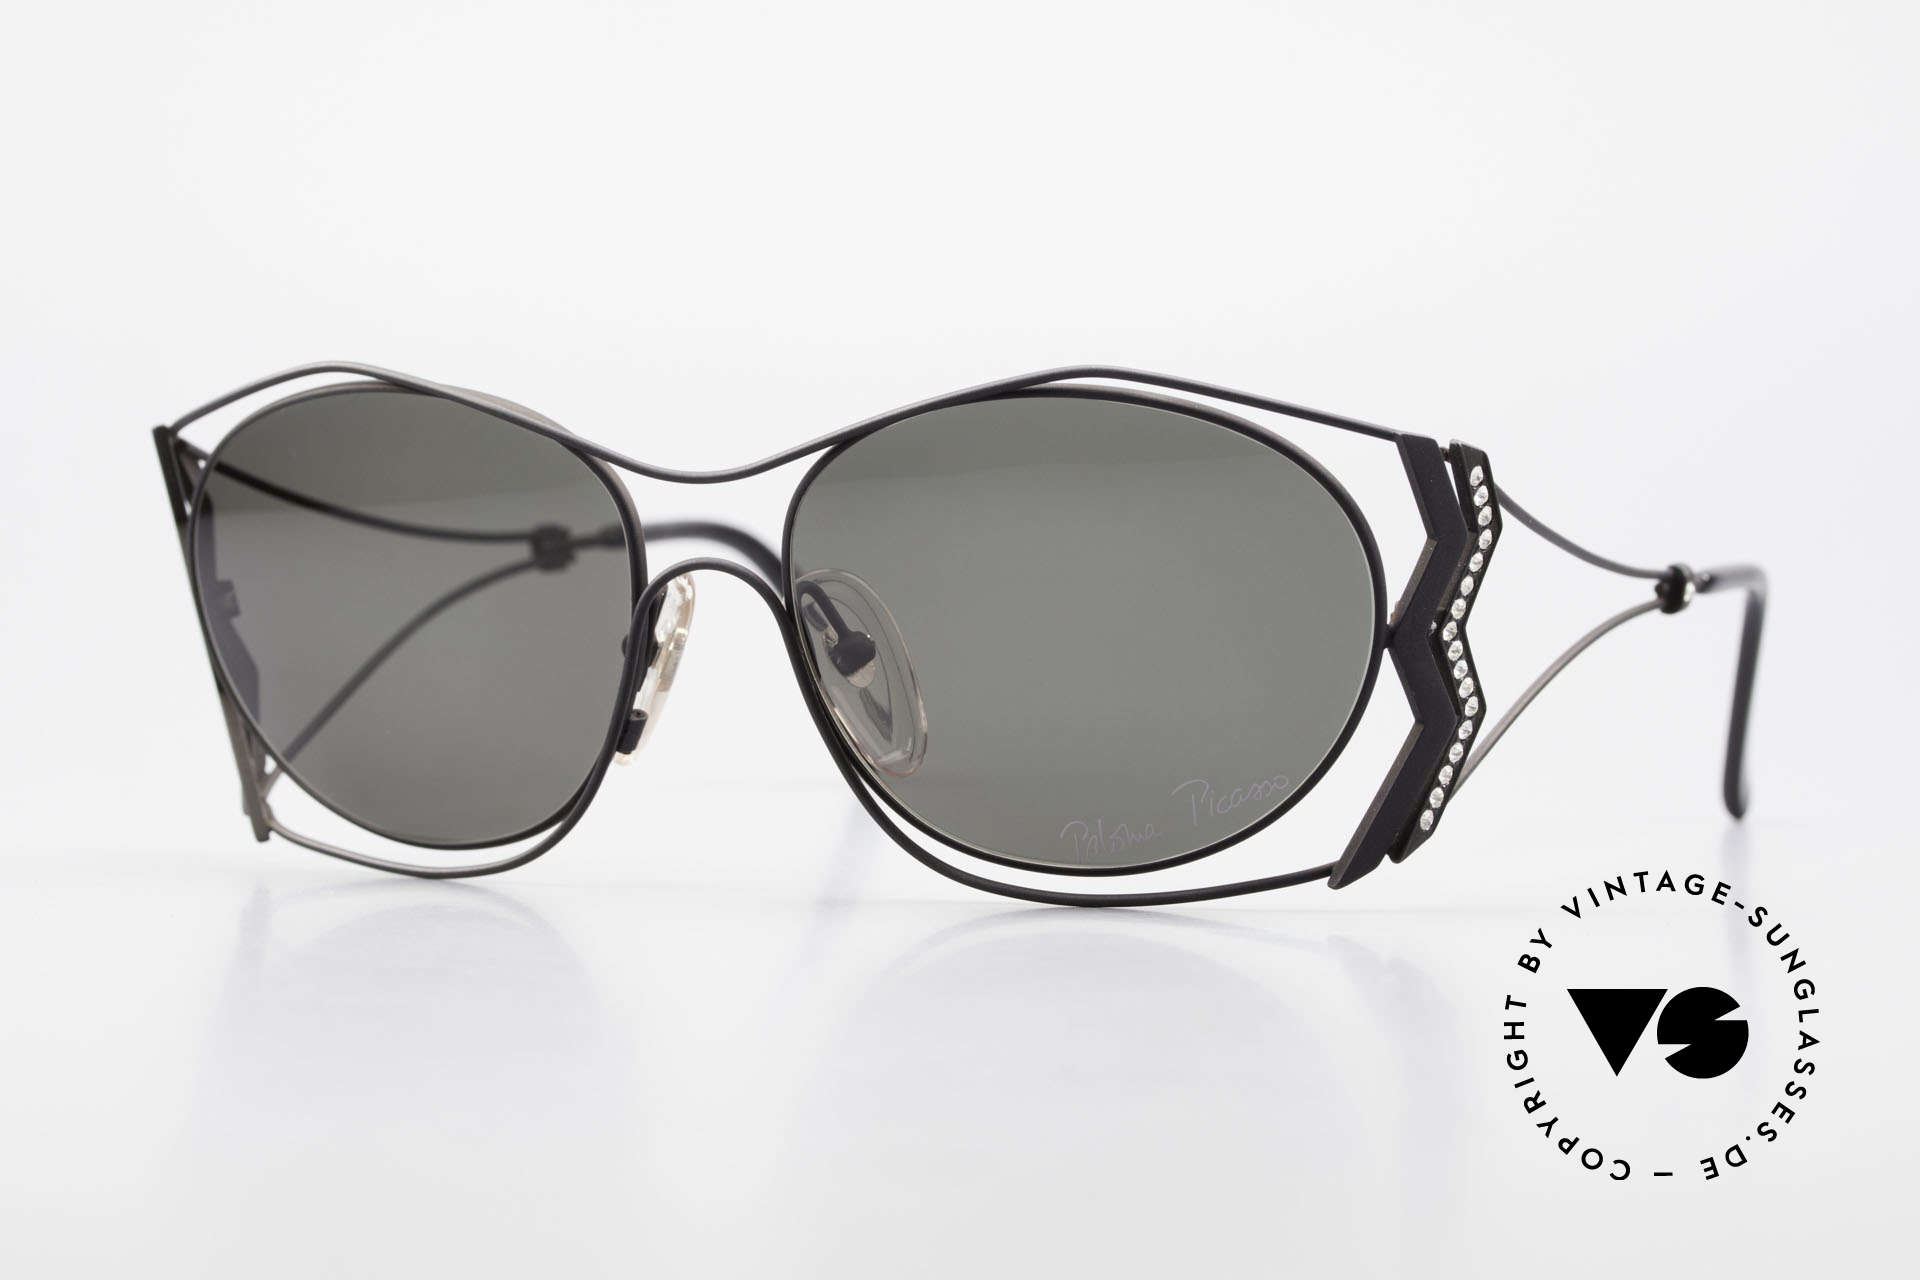 Paloma Picasso 3707 90s Shades Crystal Rhinestones, Picasso vintage sunglasses with Crystal rhinestones, Made for Women